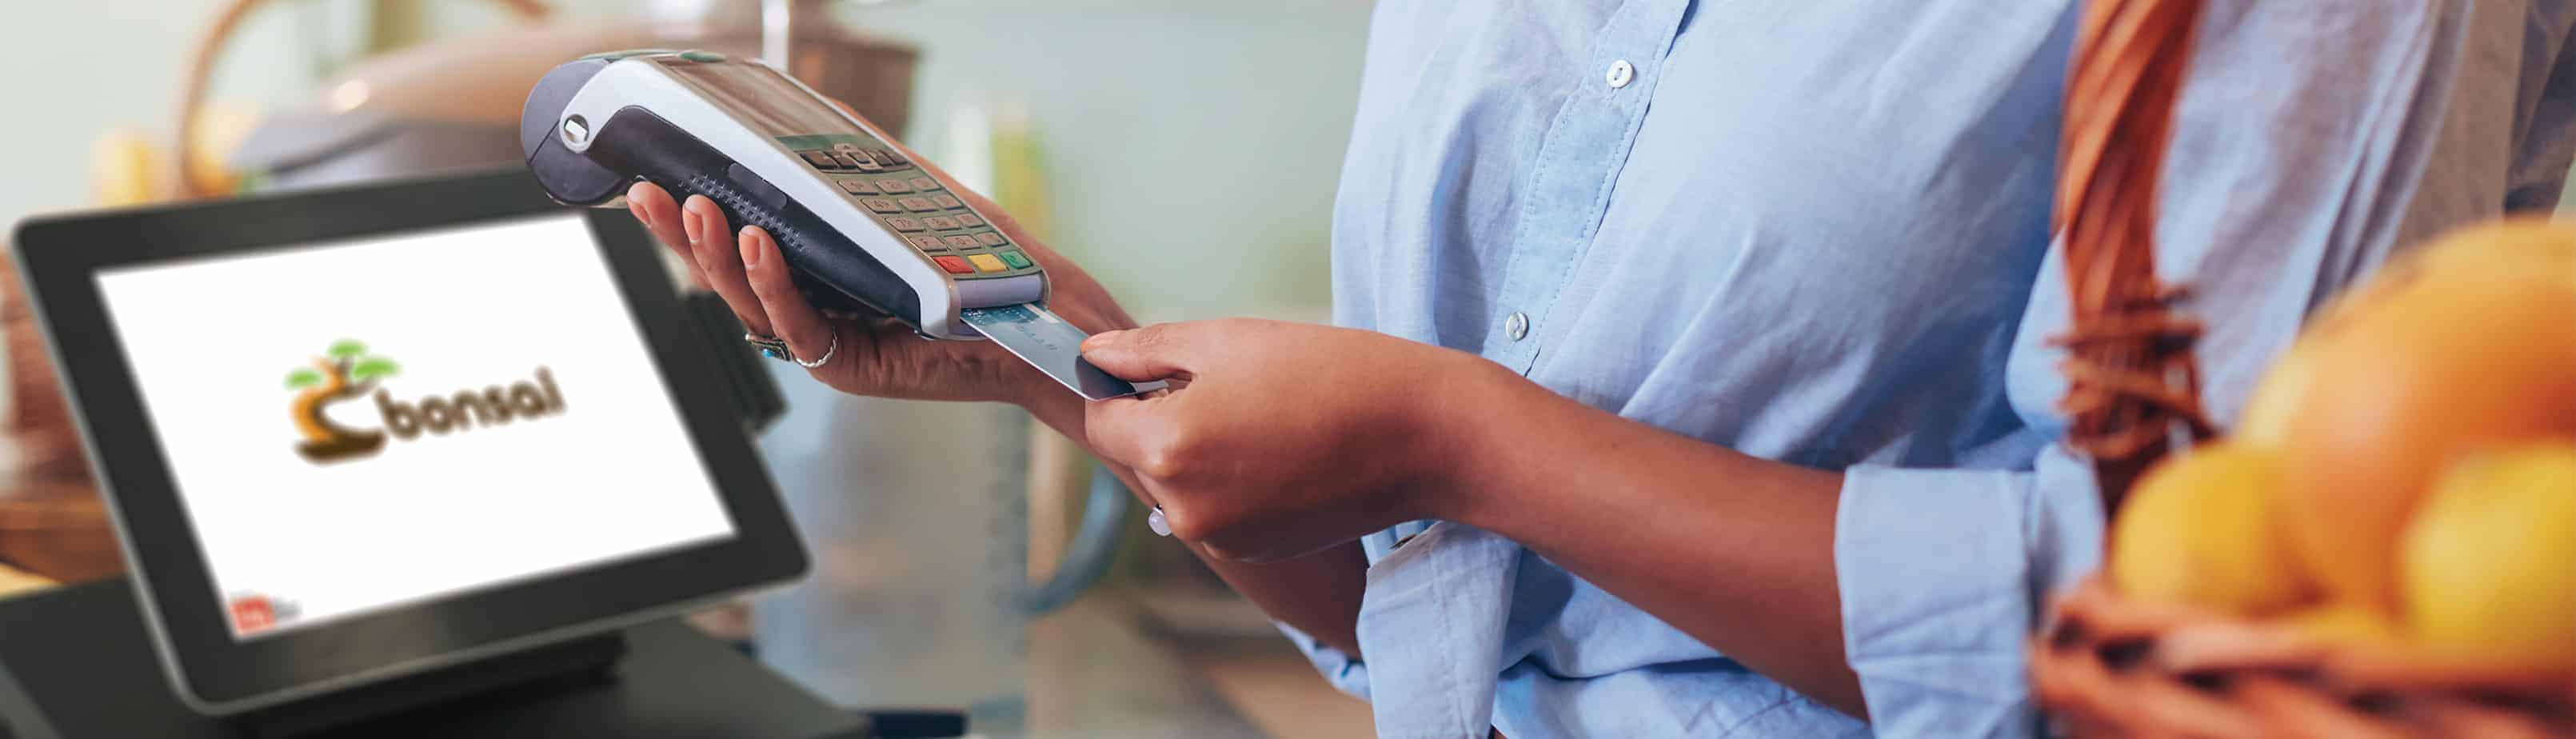 Real time payments realtime credit card processing